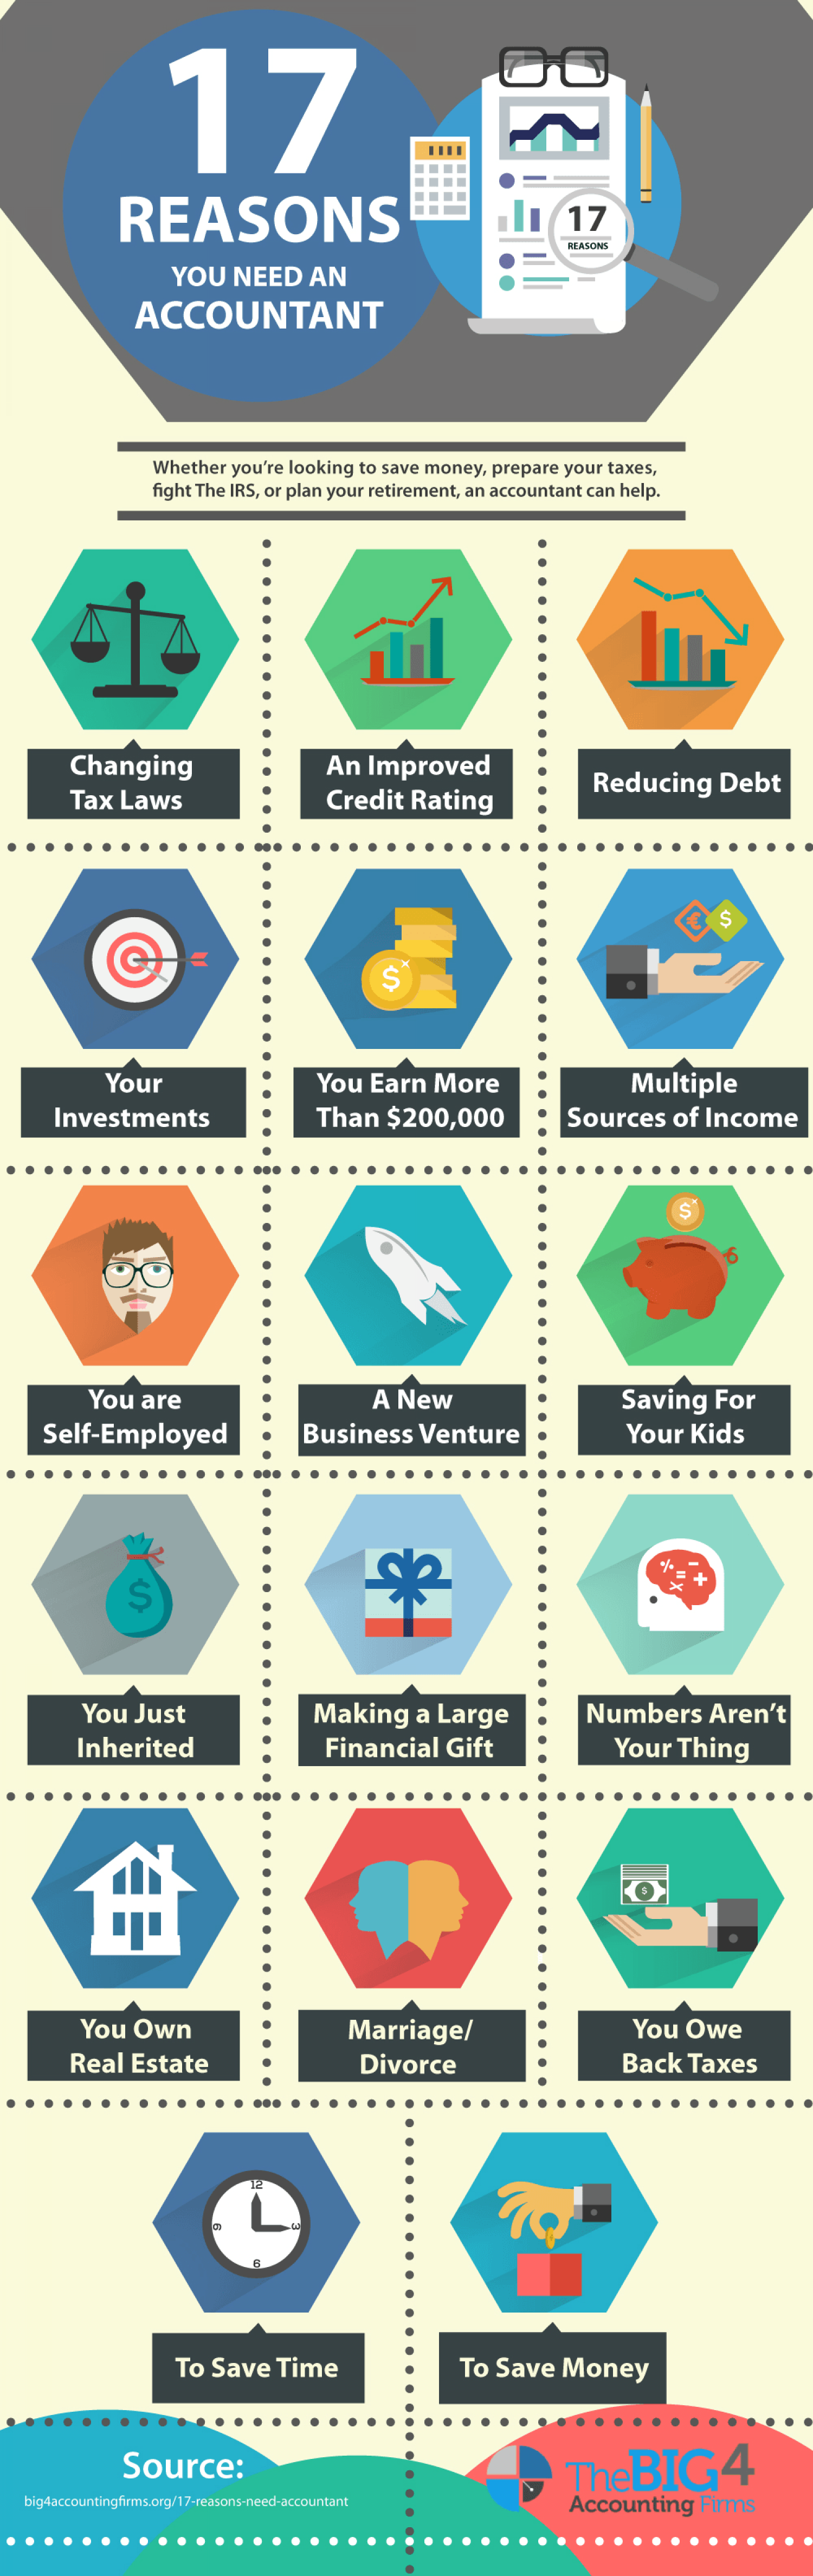 17 Reasons You Need an Accountant Infographic